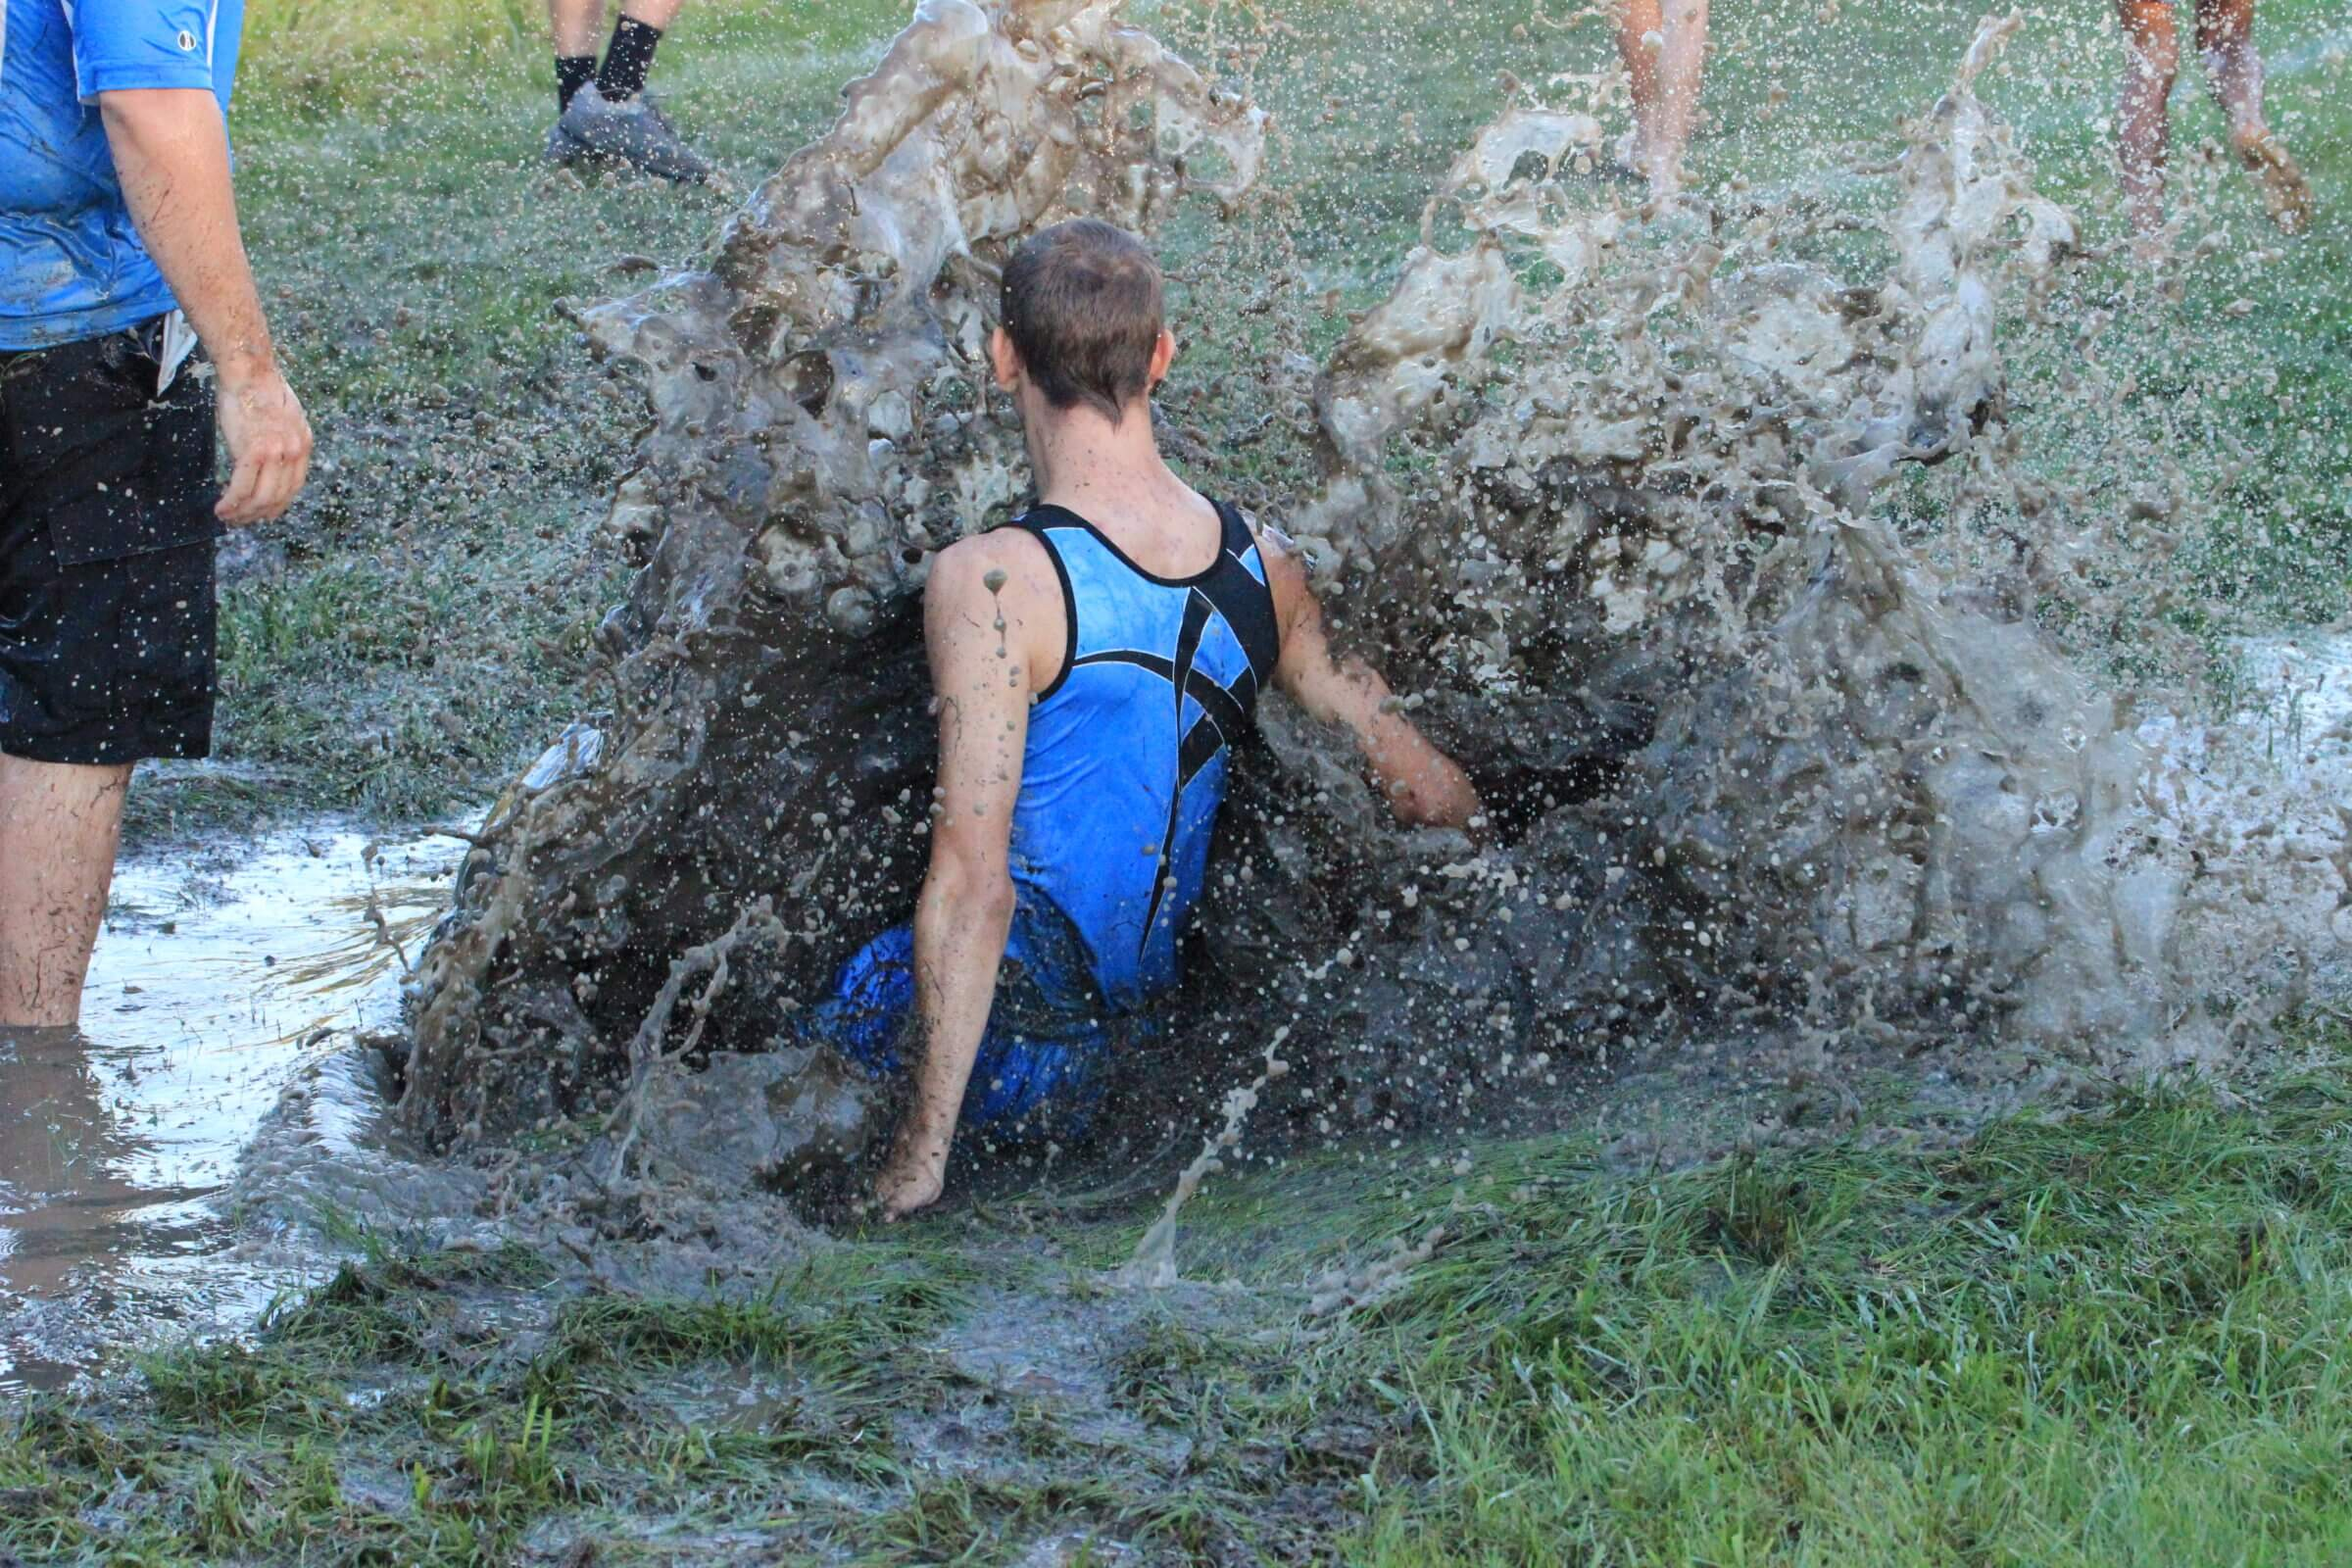 A TigerHawk cross country runner splashing into water